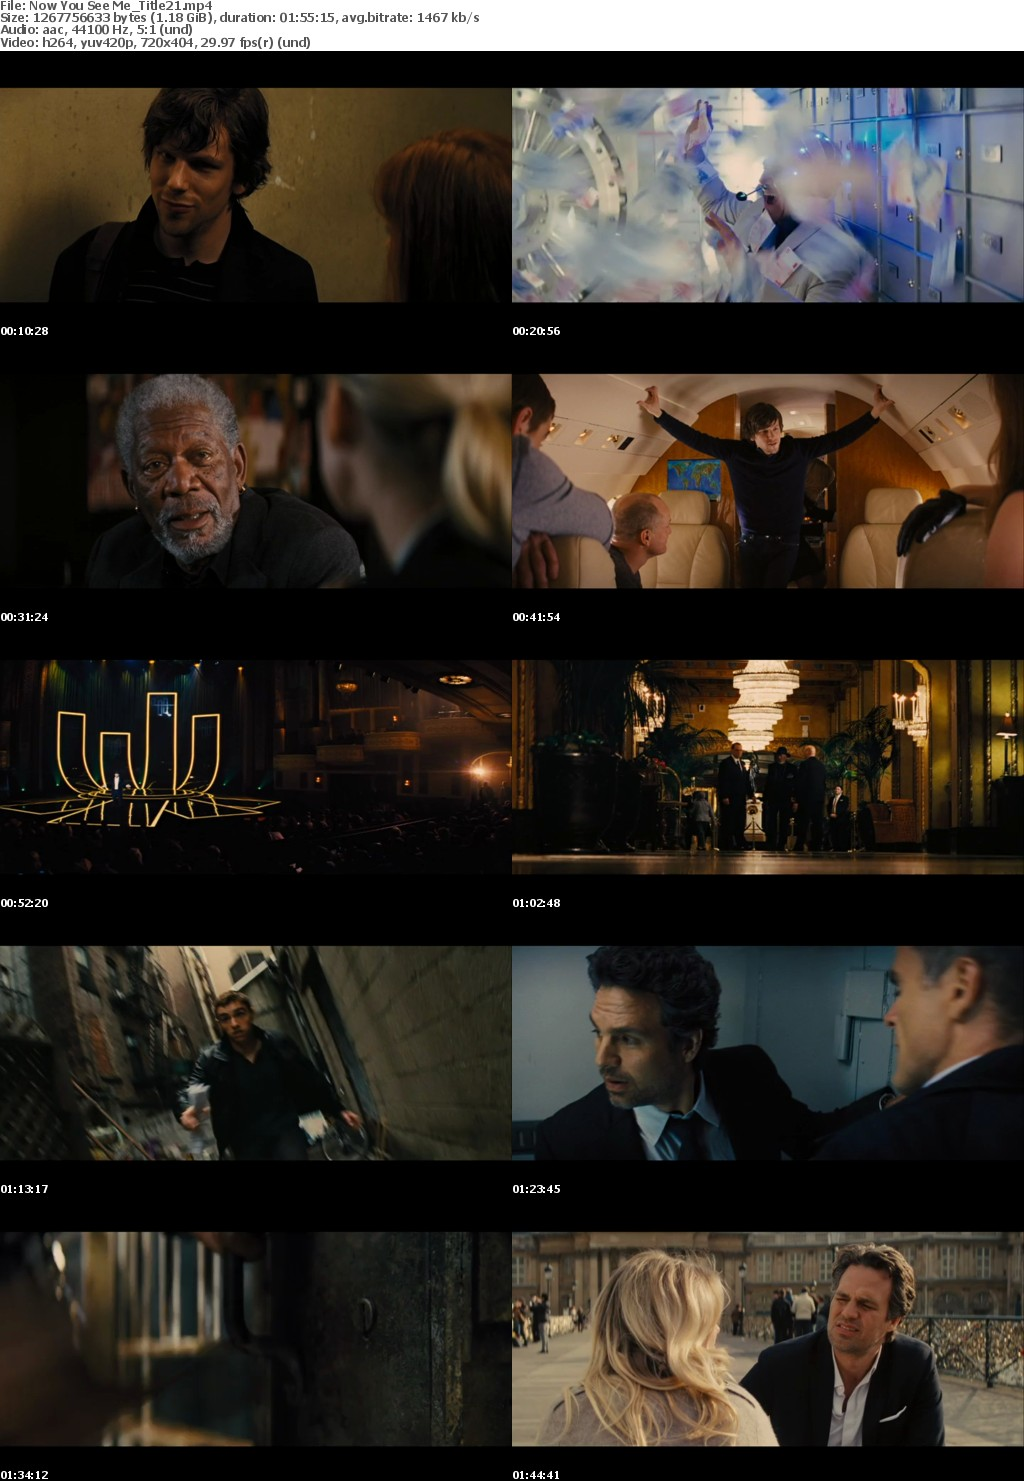 Now You See Me 2 (2016)Mp-4 X264 Dvd-Rip 480p AVCDSD